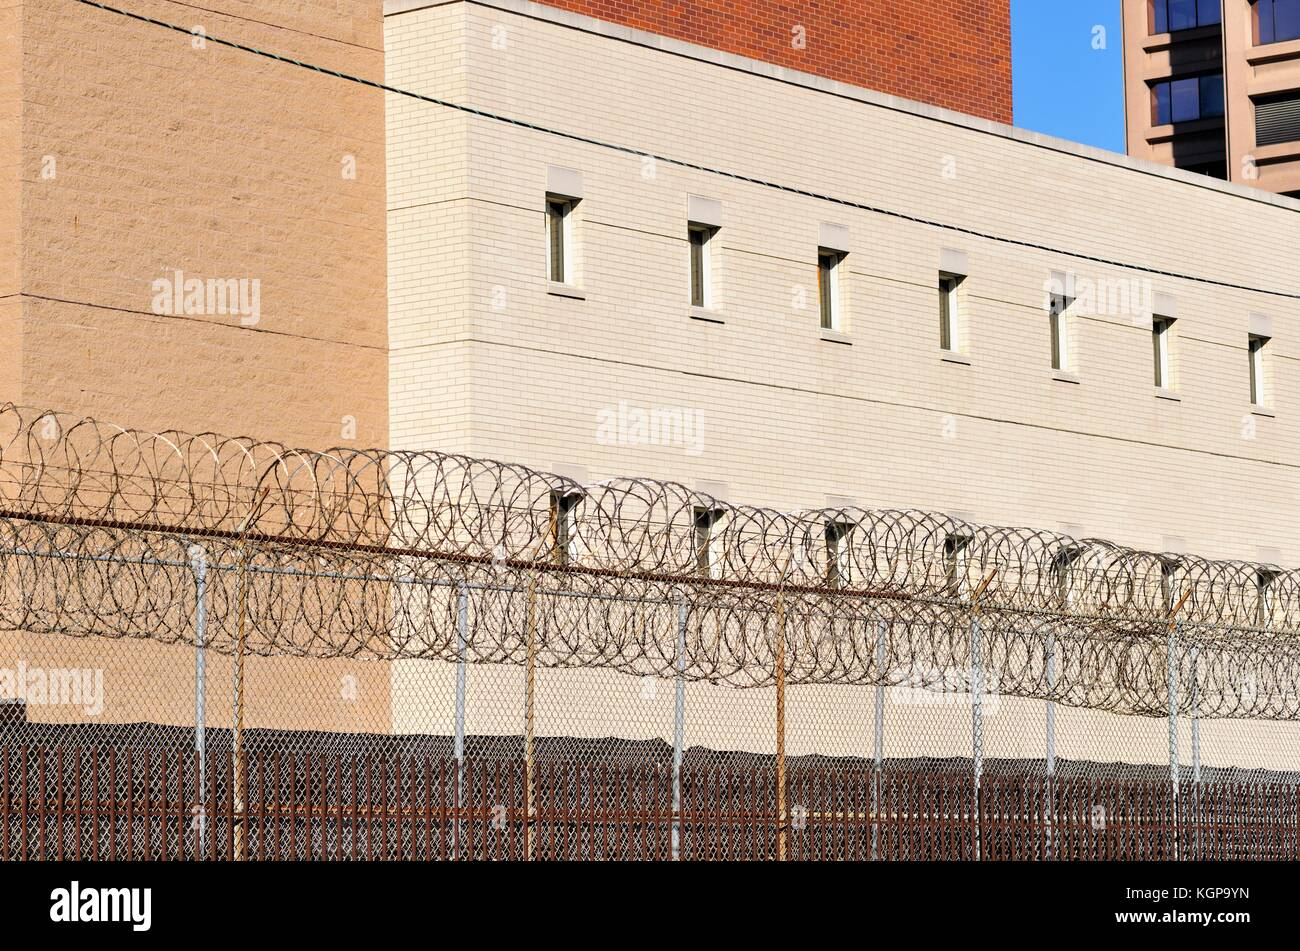 Barbed wire around a section of the Cook County Jail facility on the south side of Chicago, Illinois, USA. - Stock Image